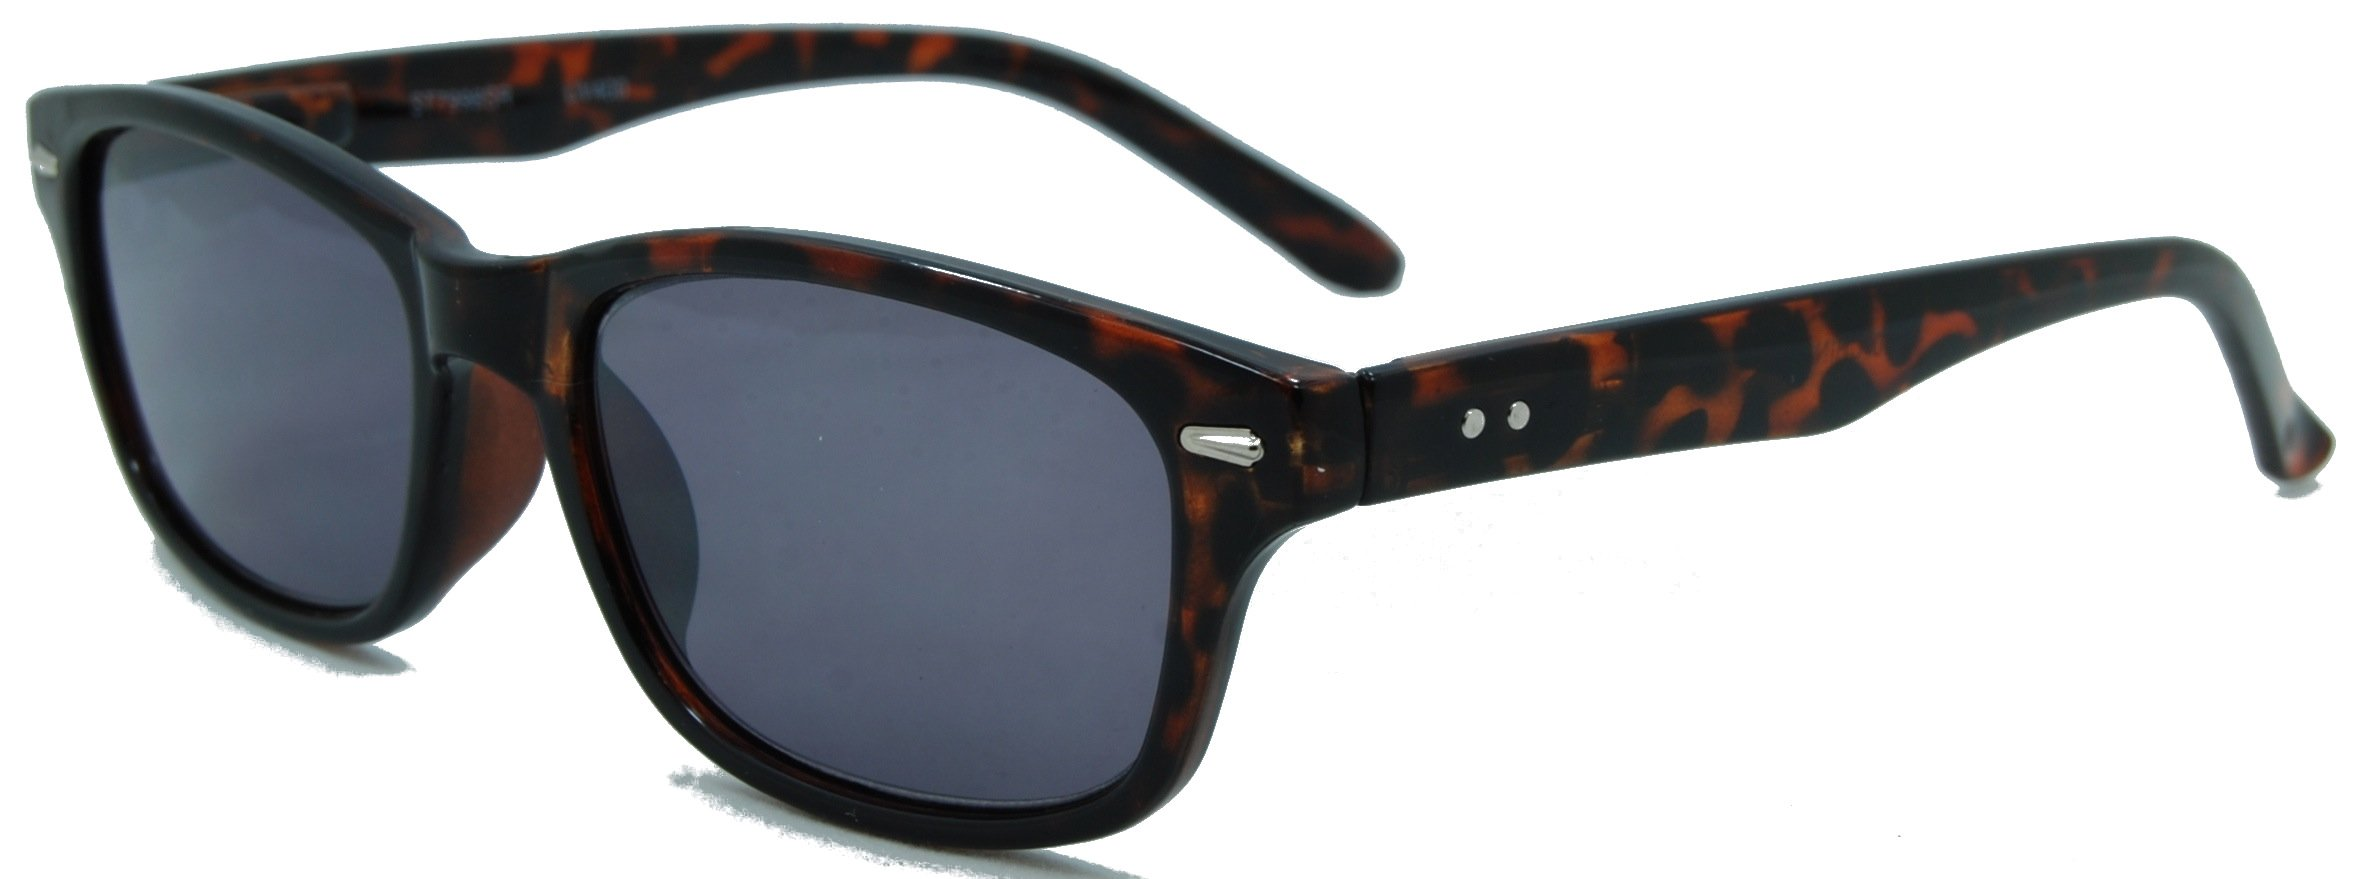 InSight, Classic Full Reader Sunglasses. Not BiFocals/Tortoise/1.25 Strength by In Style Eyes